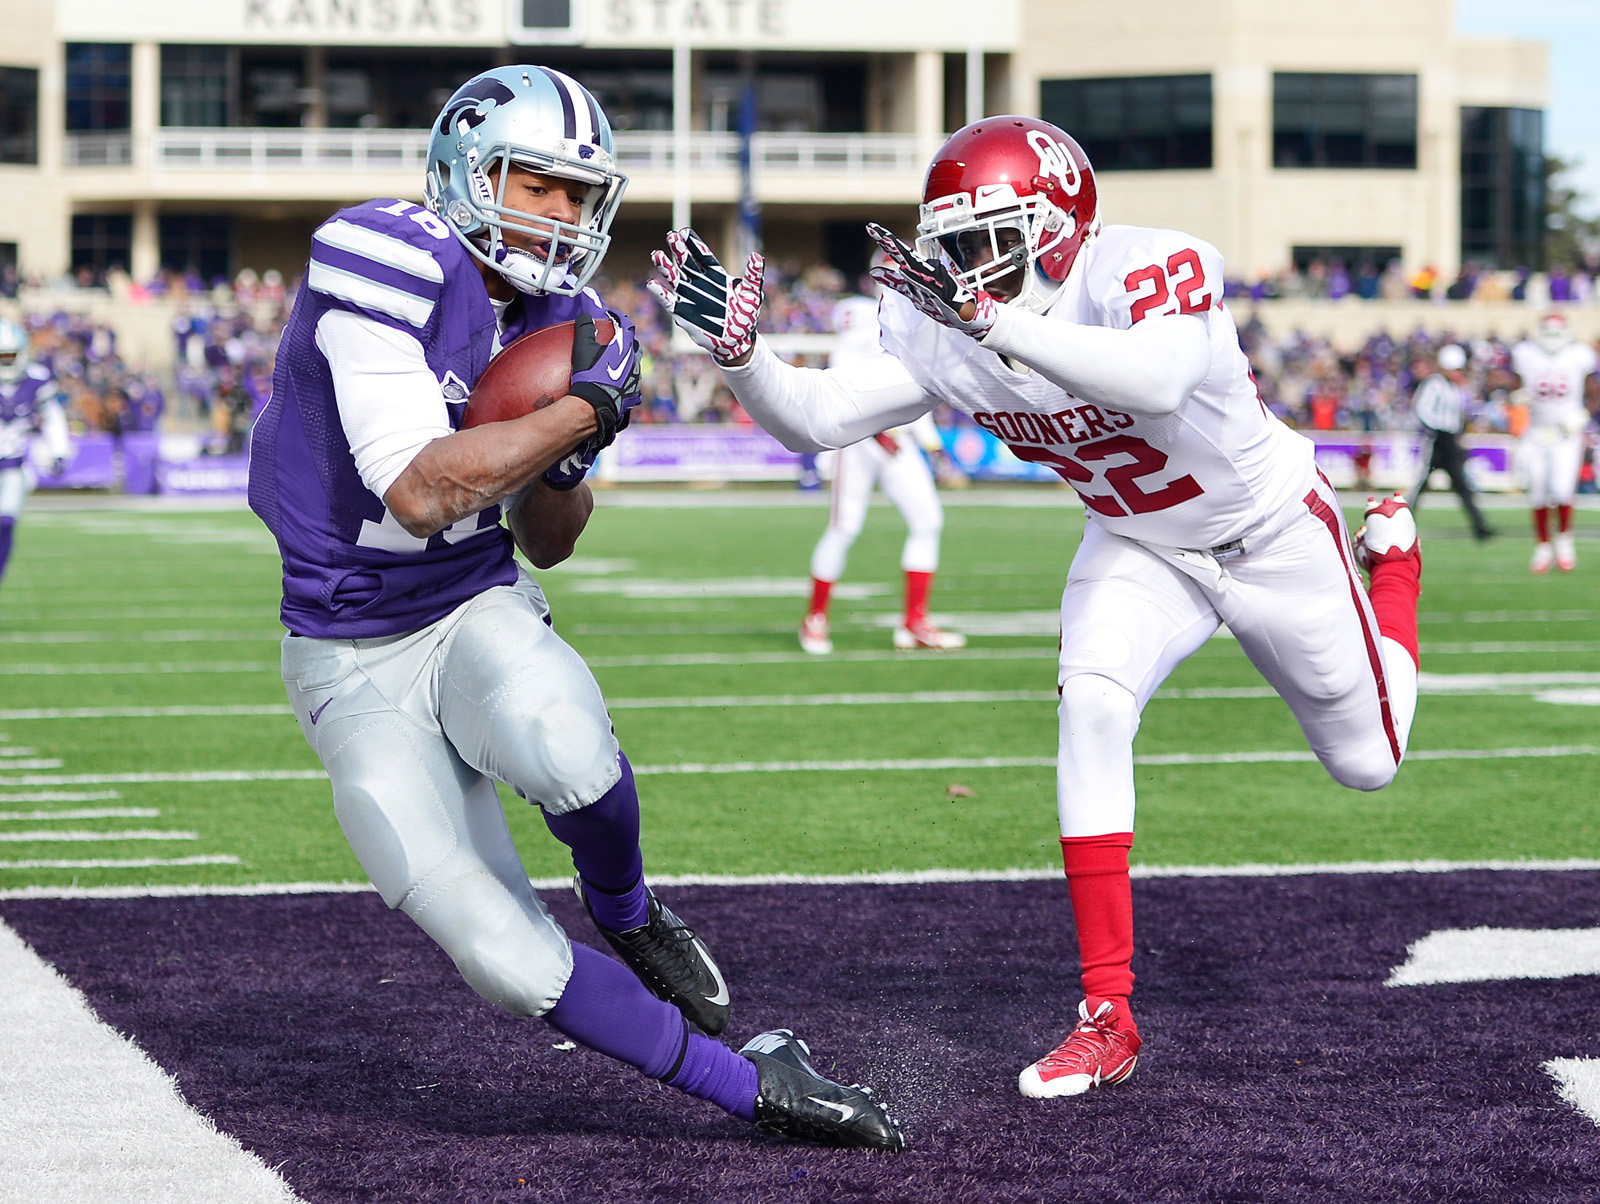 Kansas State Wildcats wide receiver Tyler Lockett (16) catches a pass for a touchdown while being defended by Oklahoma Sooners defensive back Cortez Johnson (22) during the first half at Bill Snyder Family Stadium. (Jasen Vinlove/USA TODAY Sports)